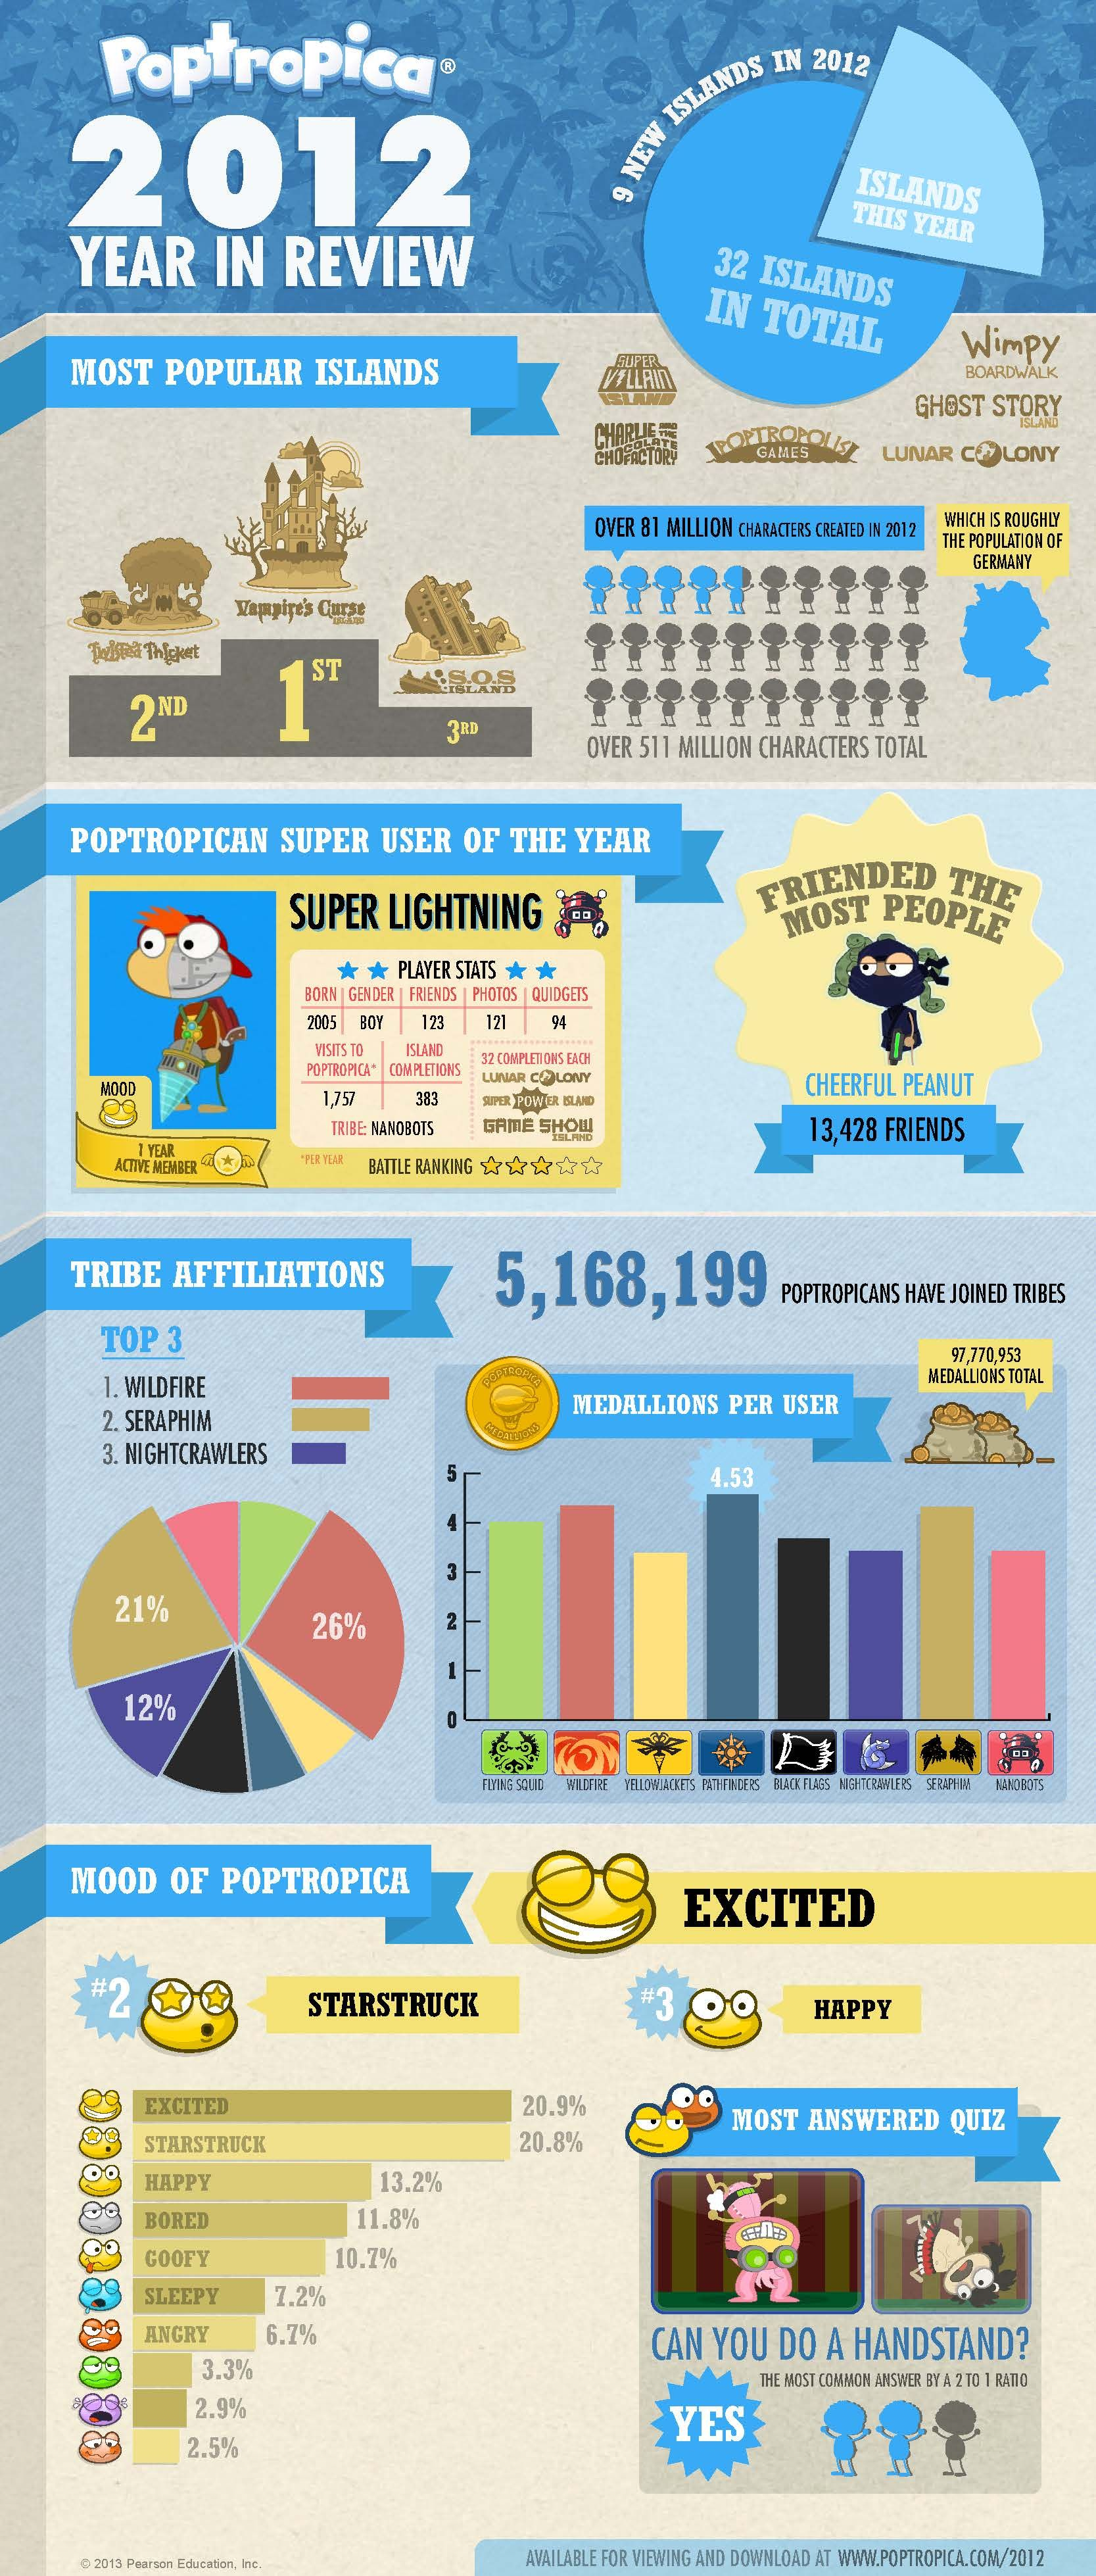 The Poptropica 2012 year in review infographic. Right in